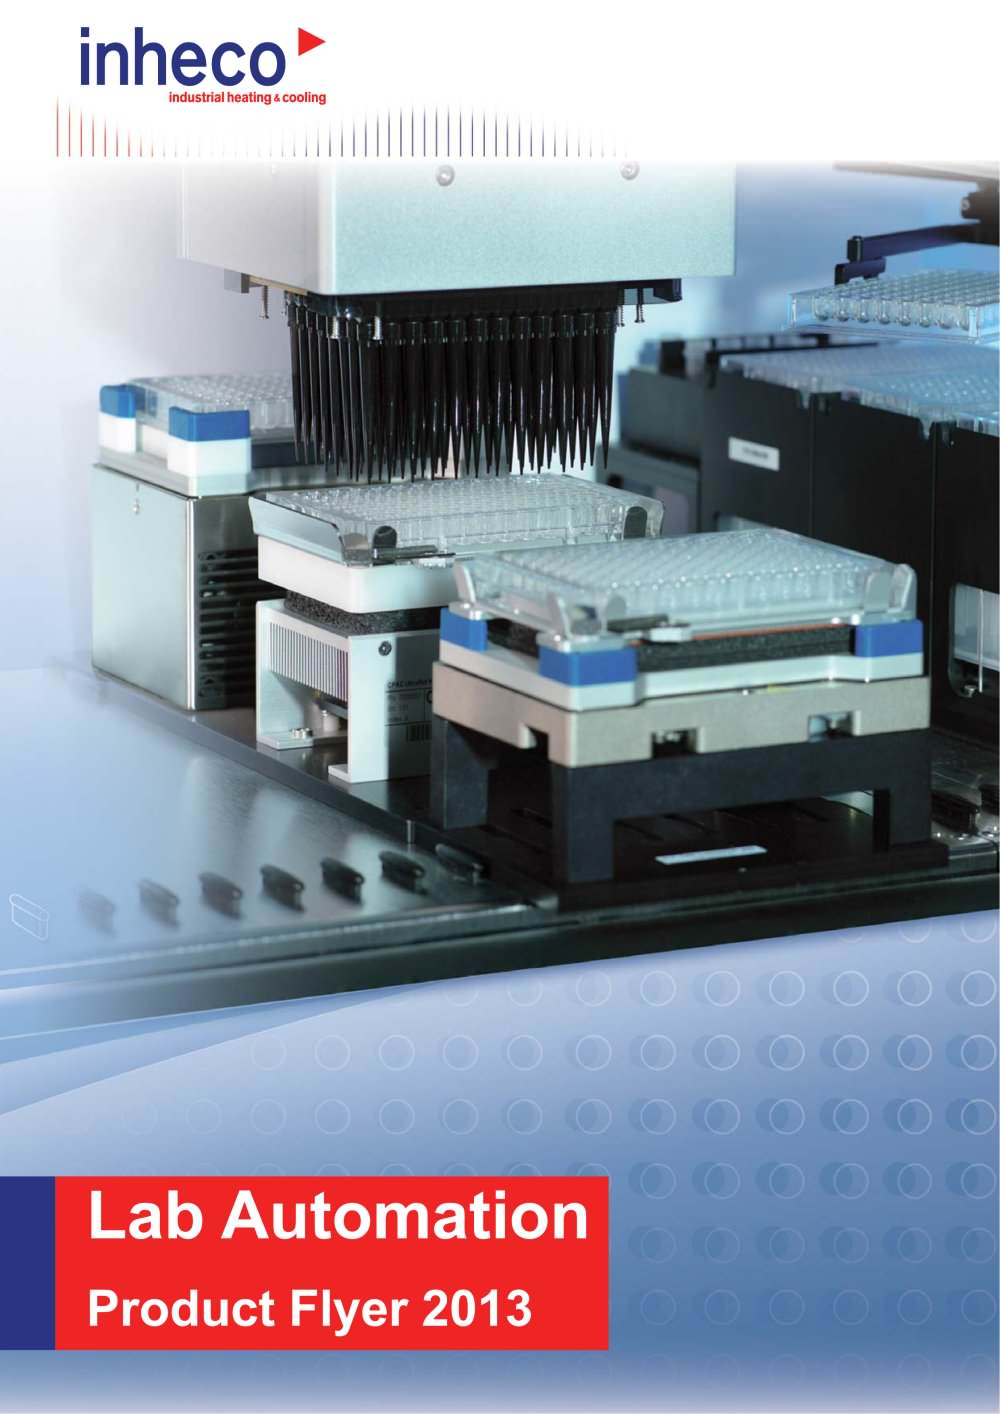 inheco product flyer inheco gmbh pdf catalogue technical inheco product flyer 1 4 pages